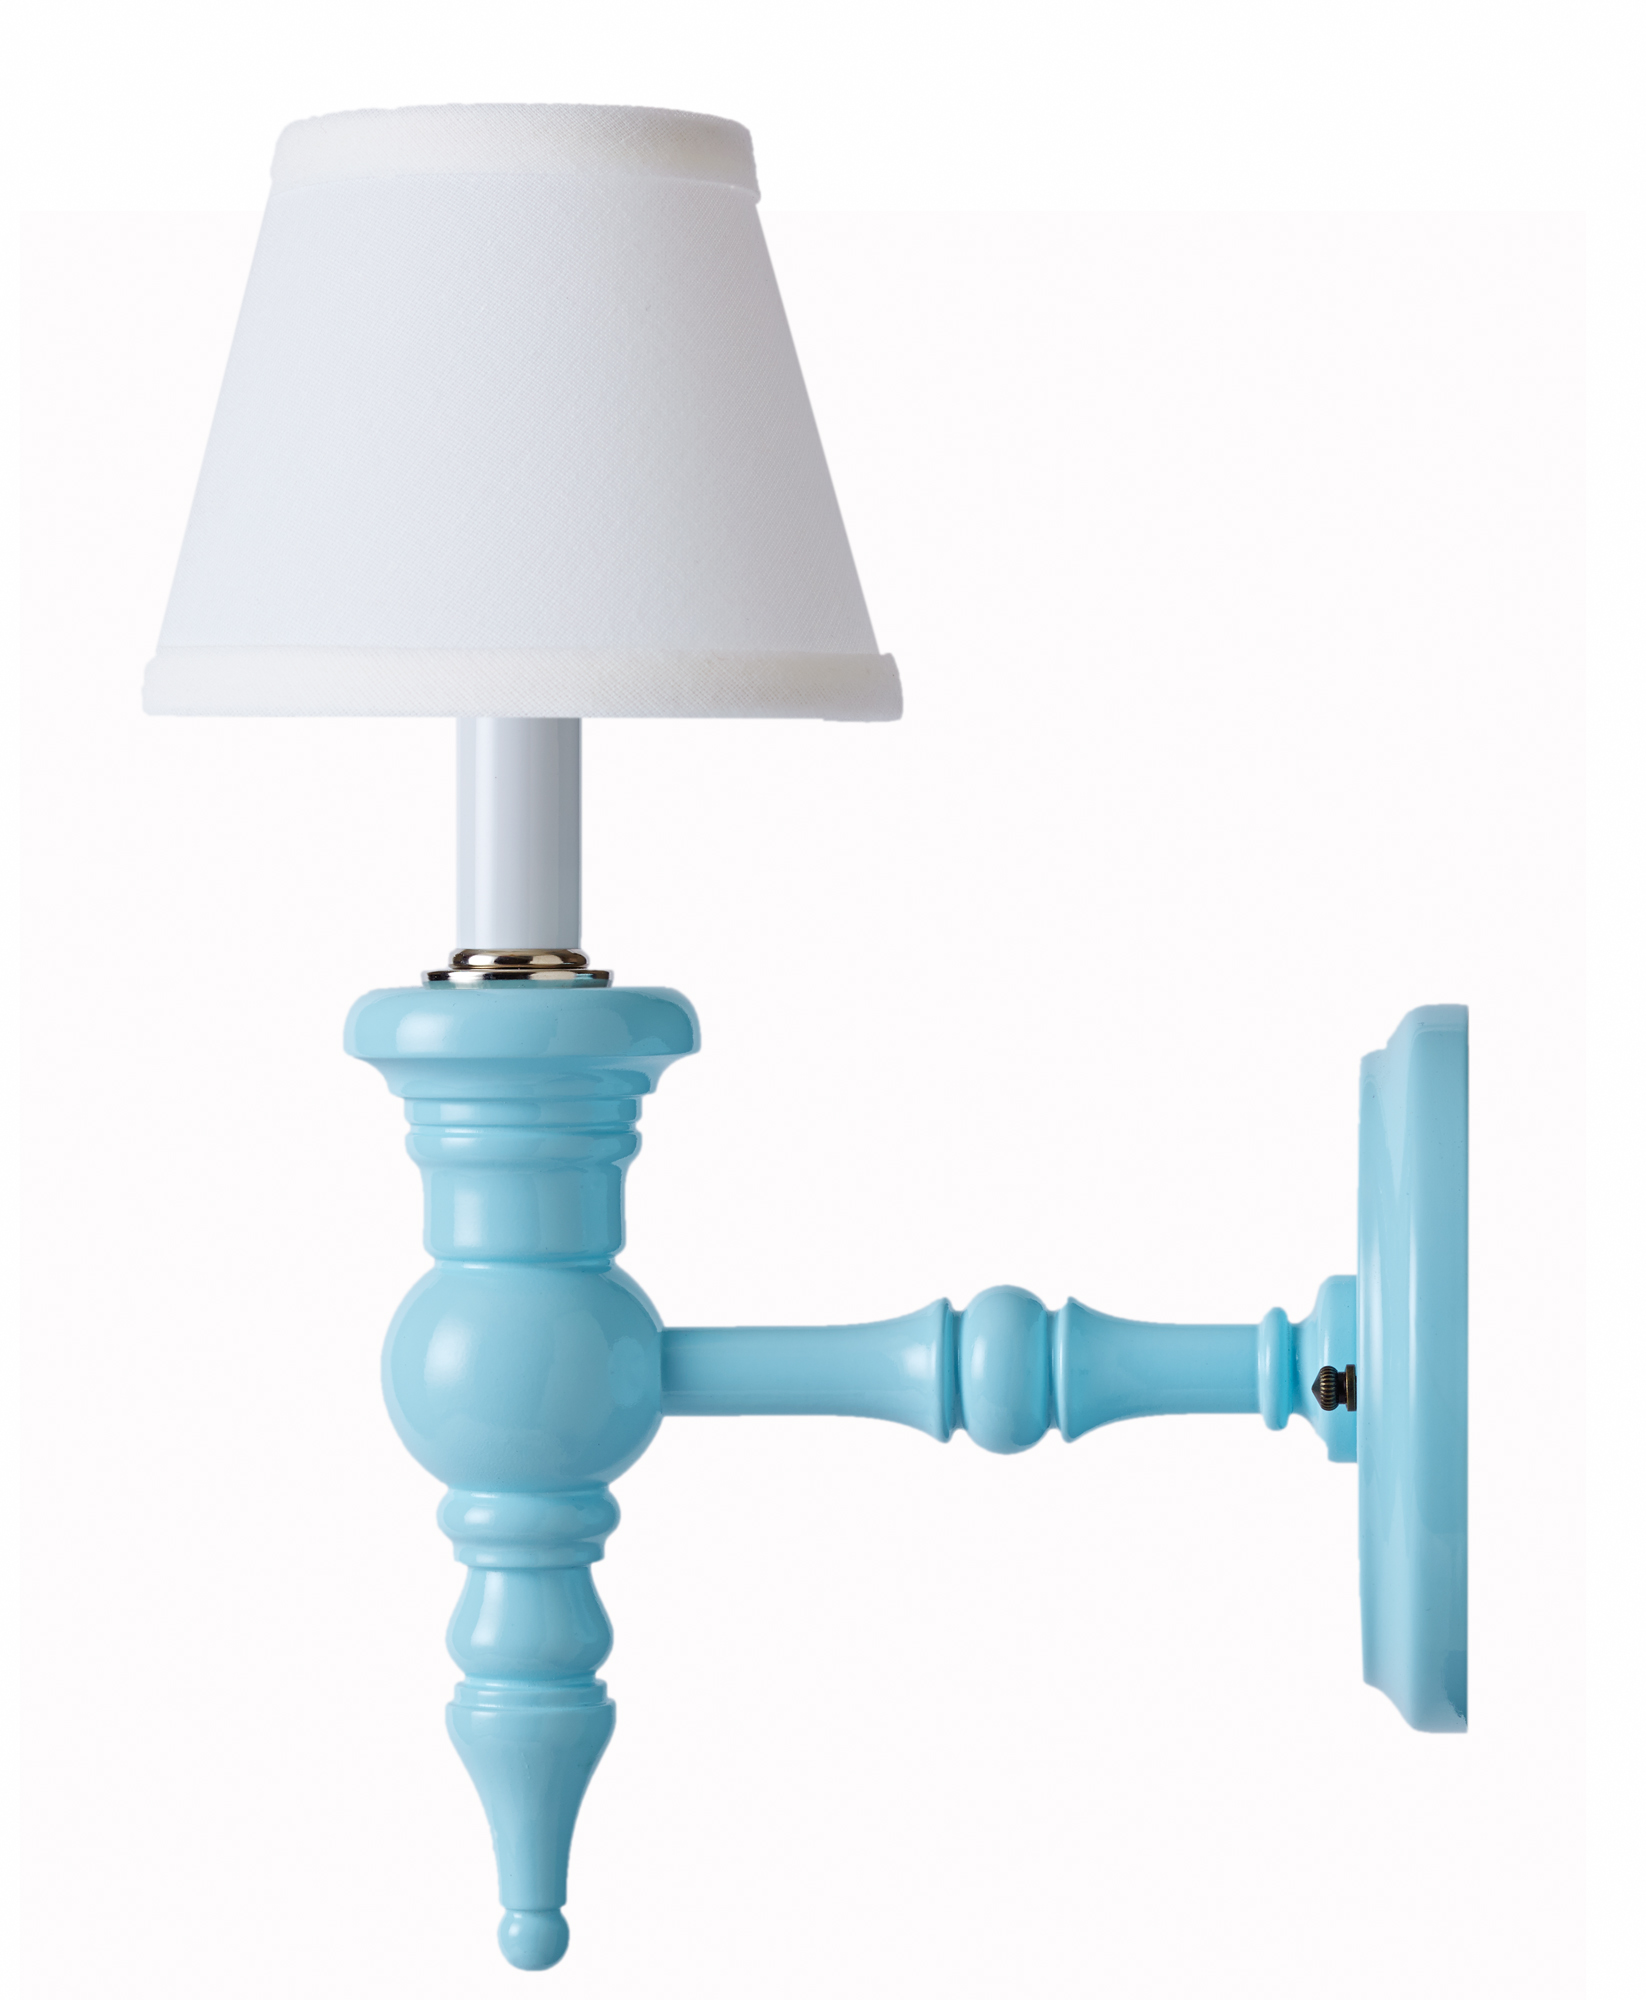 Palm Beach sconce in robin's egg blue from Dune & Duchess